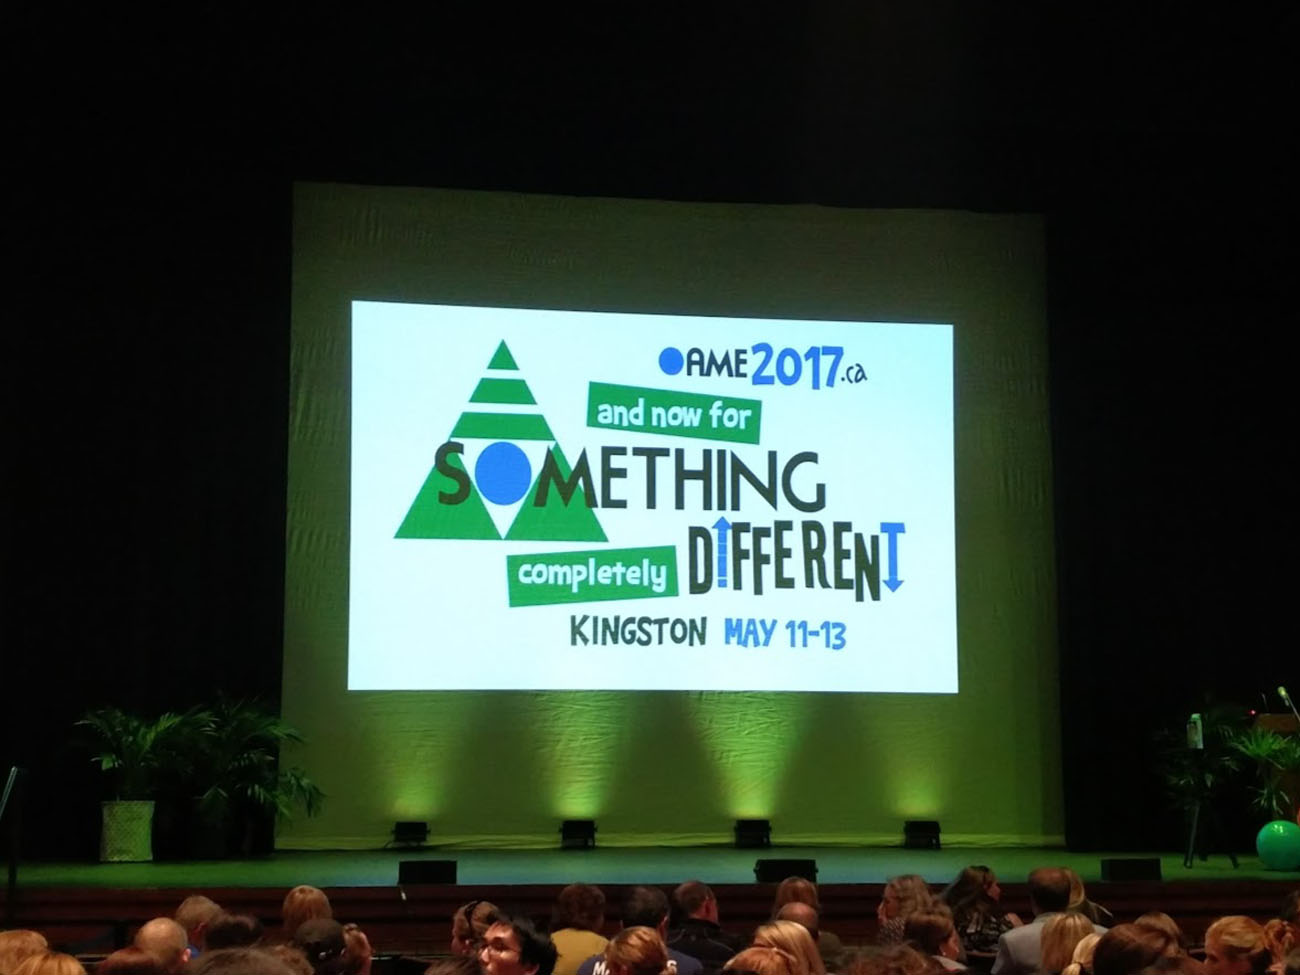 OAME 2017 - and now for something completely different